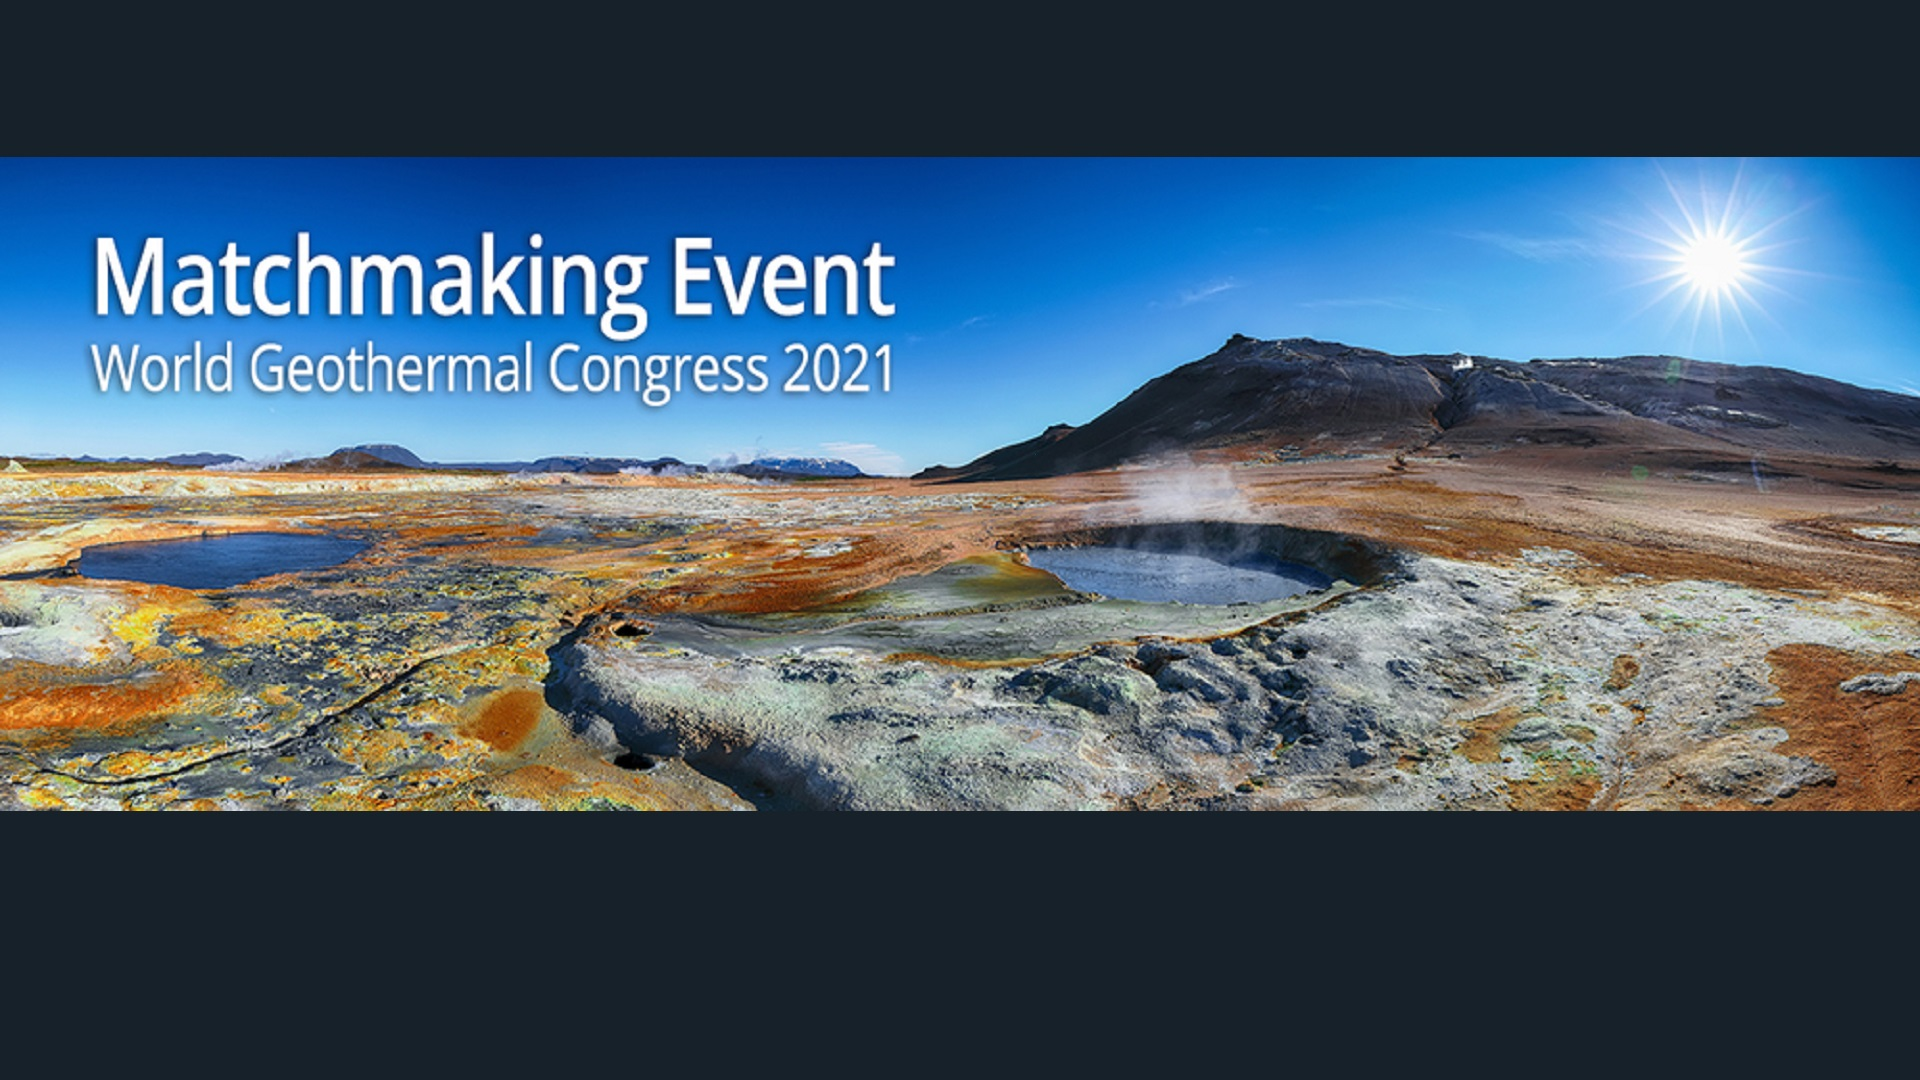 geothermal-conference-2021-matchmaking-event